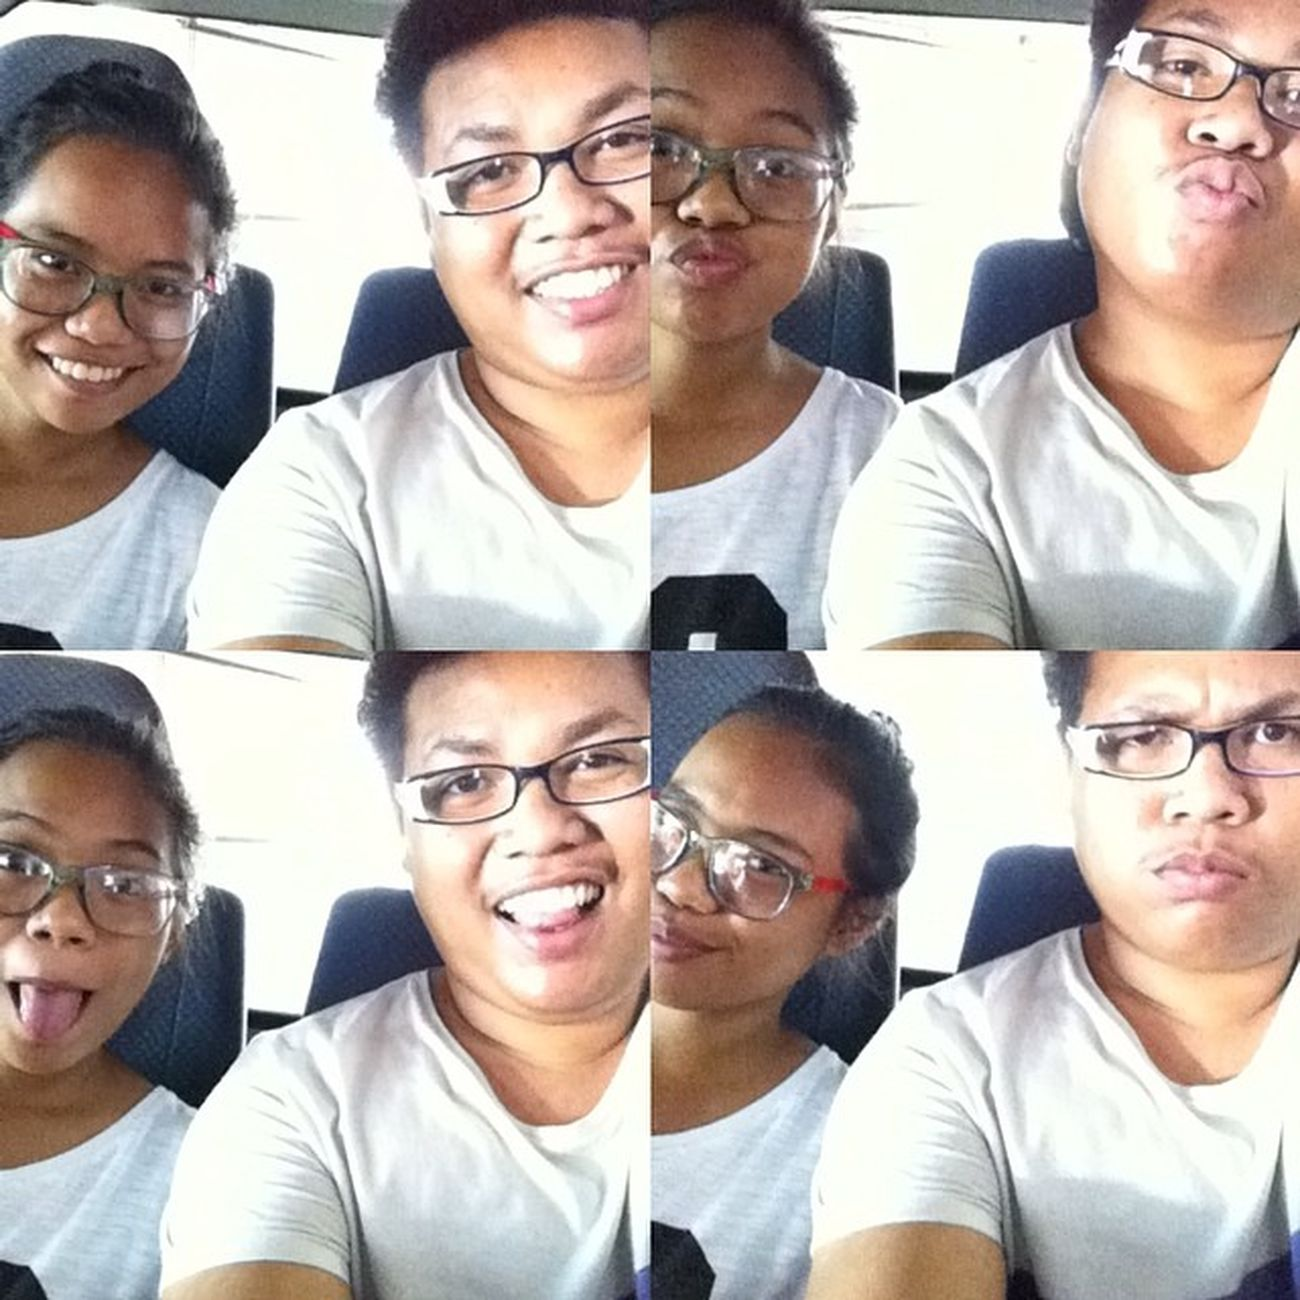 Major Goof. With Neggy. Pacute Akalamomaputi Cute Goofing glasses smile ?